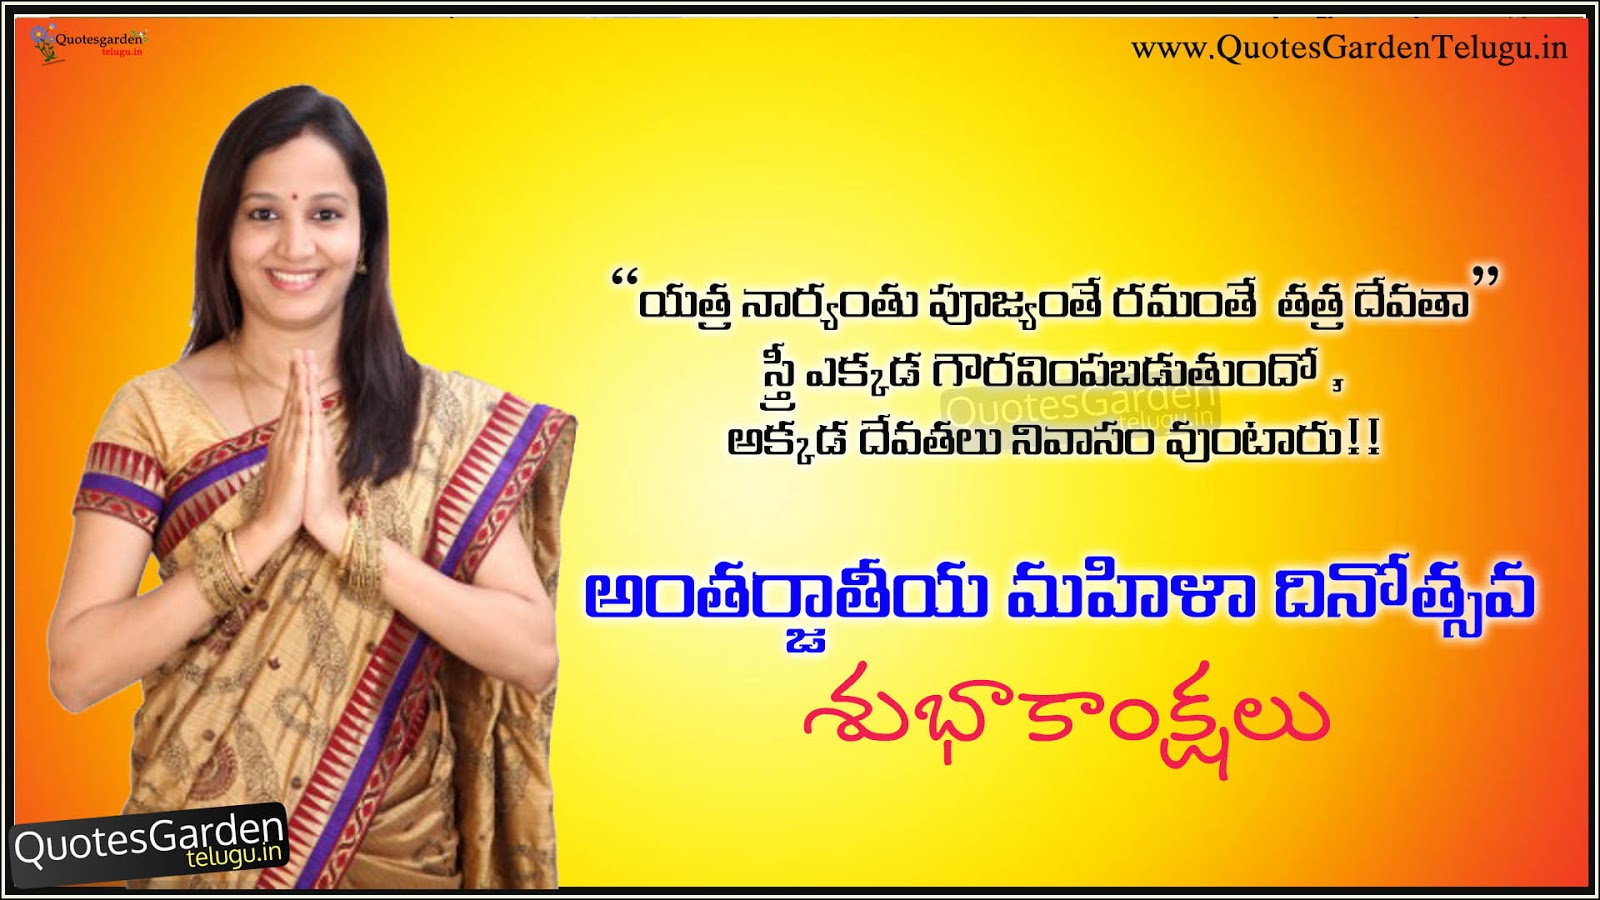 Happy Womens Day 2016 Greetings Quotes In Telugu Quotes Garden